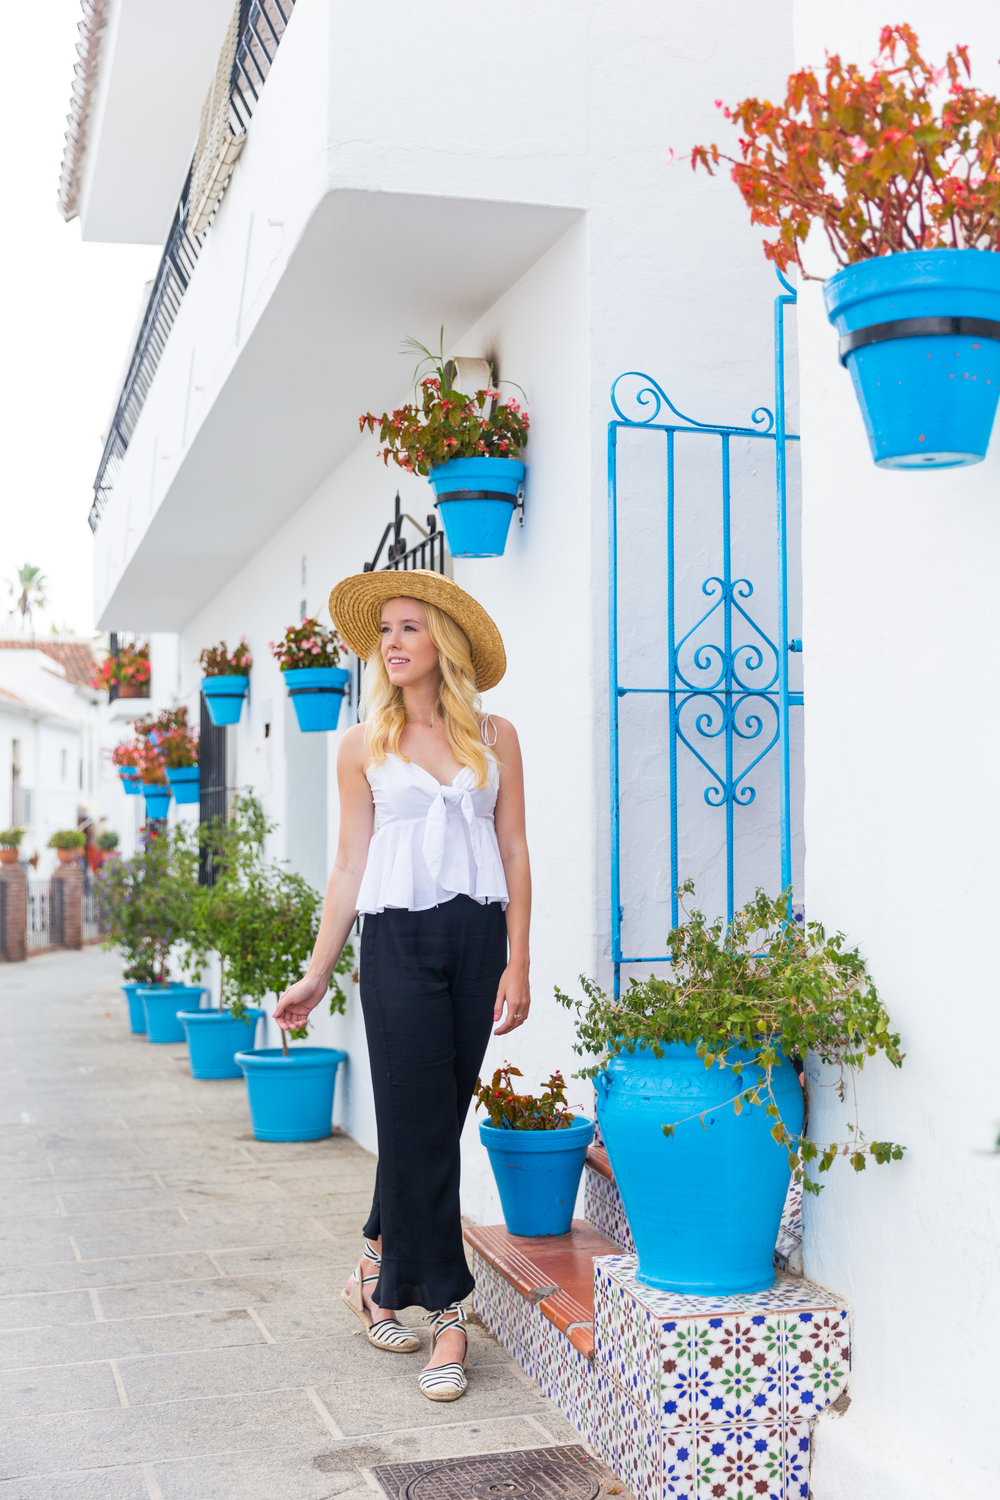 Spain Mijas Malaga Black and White Summer Fashion Flare.jpg